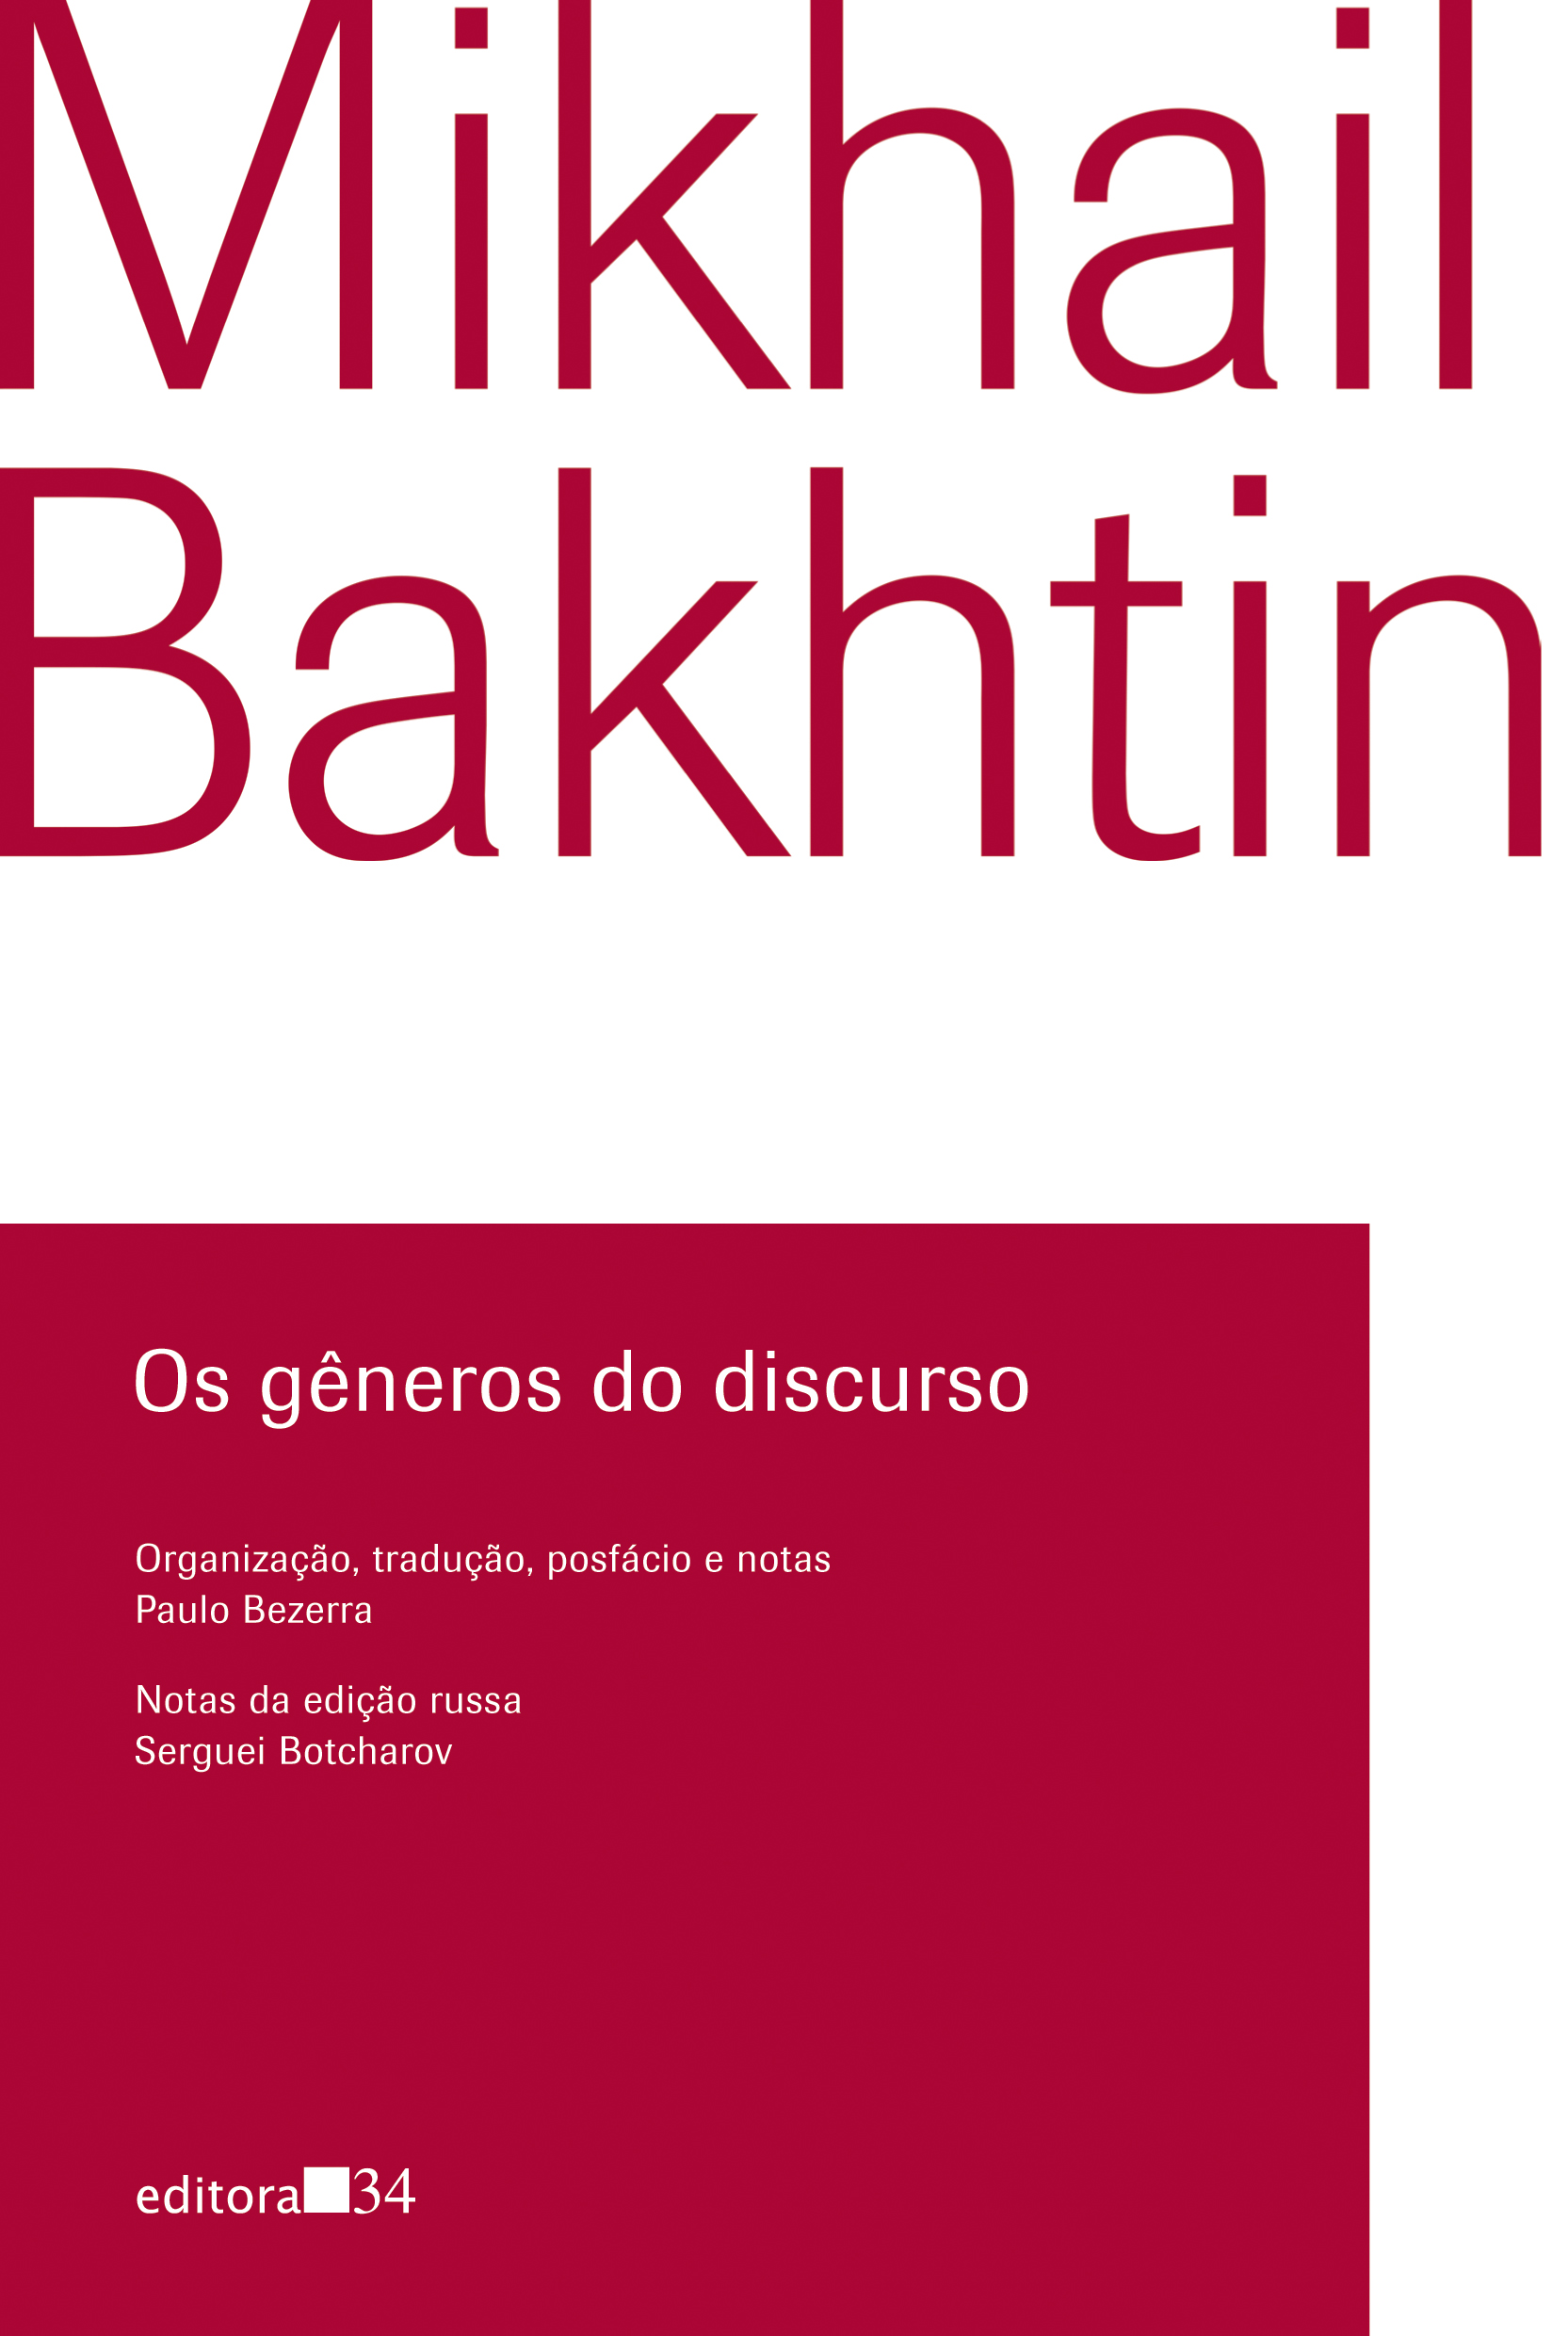 critical essays on mikhail bakhtin In particular, writing at the same critical historical moment, bakhtin's claims are echoed in dh lawrence's own essays on the novel, and illustrated - indeed, performed - in his fiction keywords law and literature , mikhail bakhtin , dh lawrence , theories of the novel.